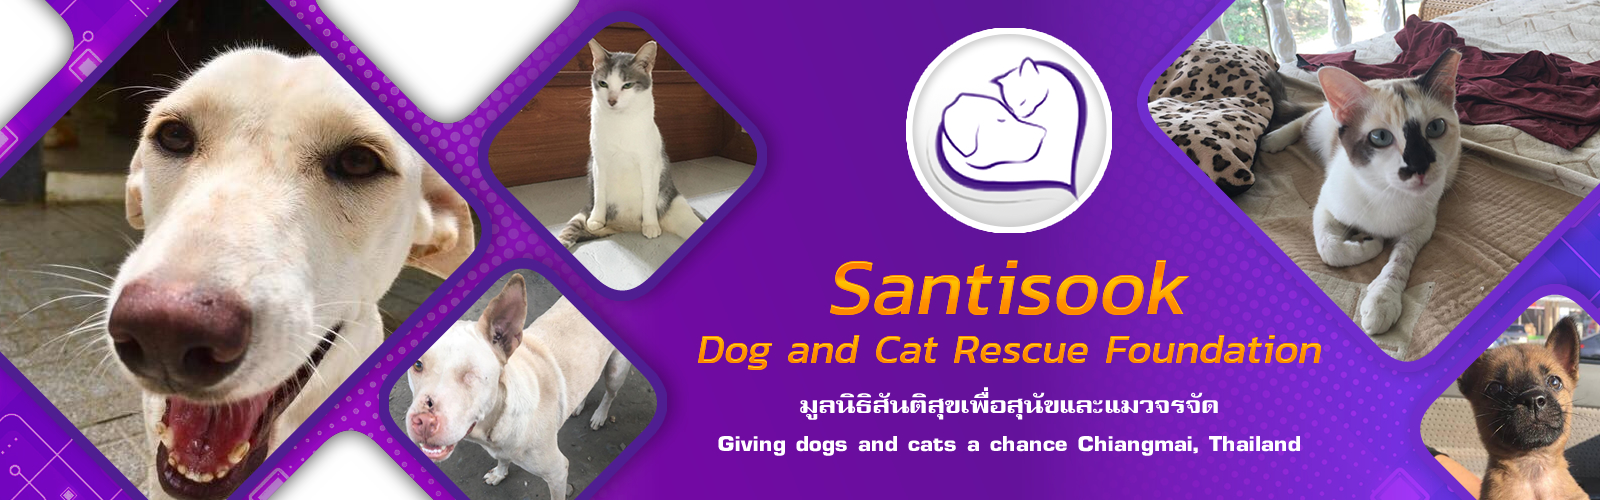 Santisook dog and cat rescue foundation